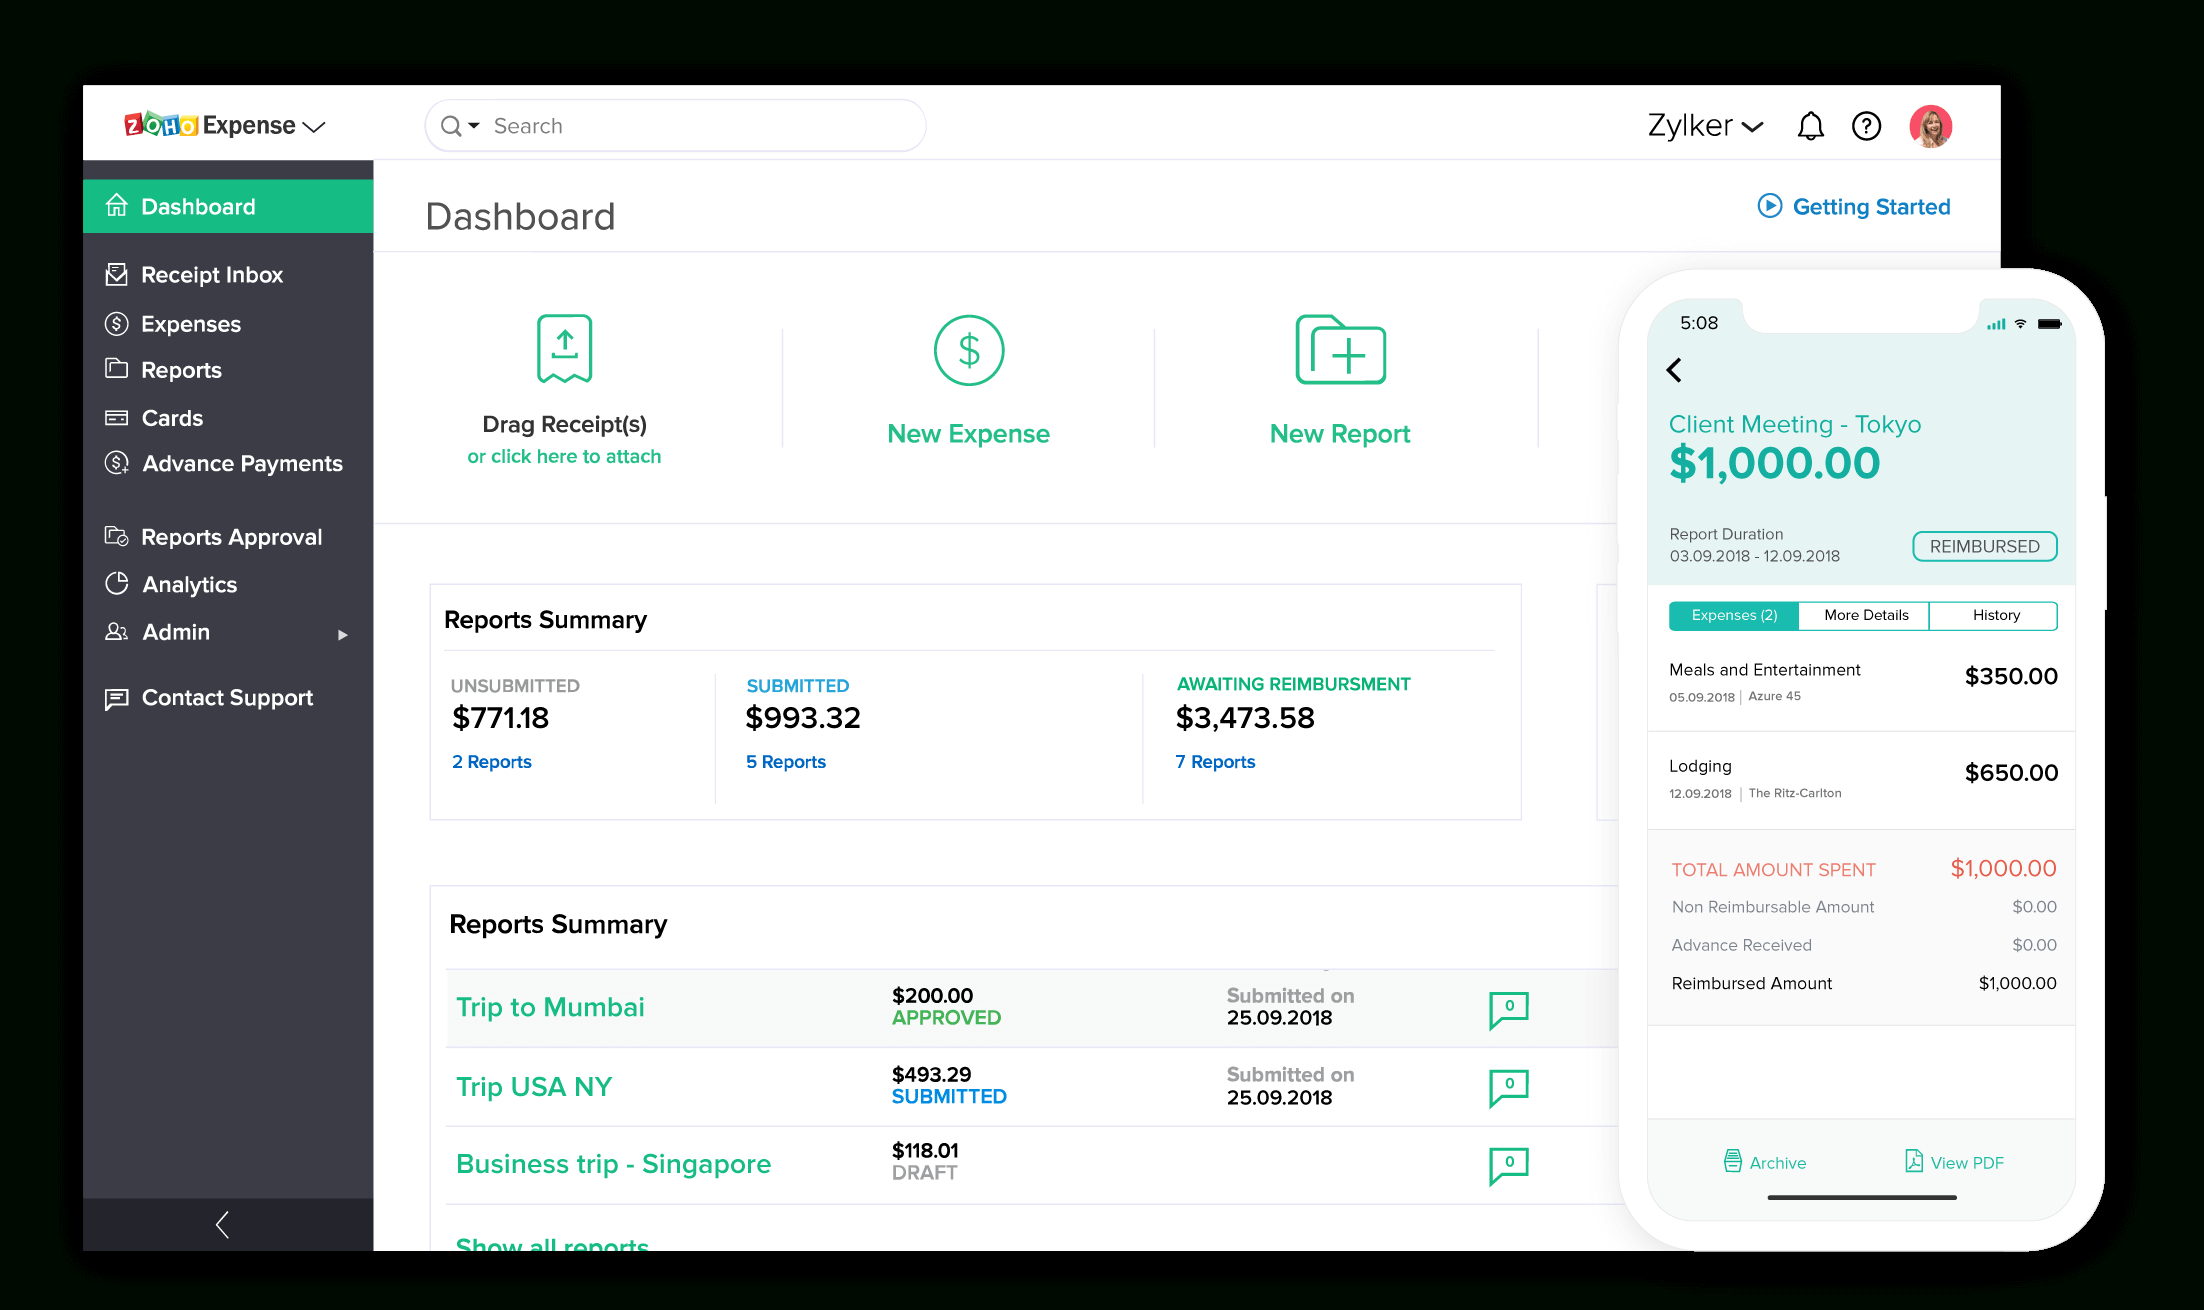 Online Expense Report Software | Zoho Expense Throughout Online Business Expense Tracker